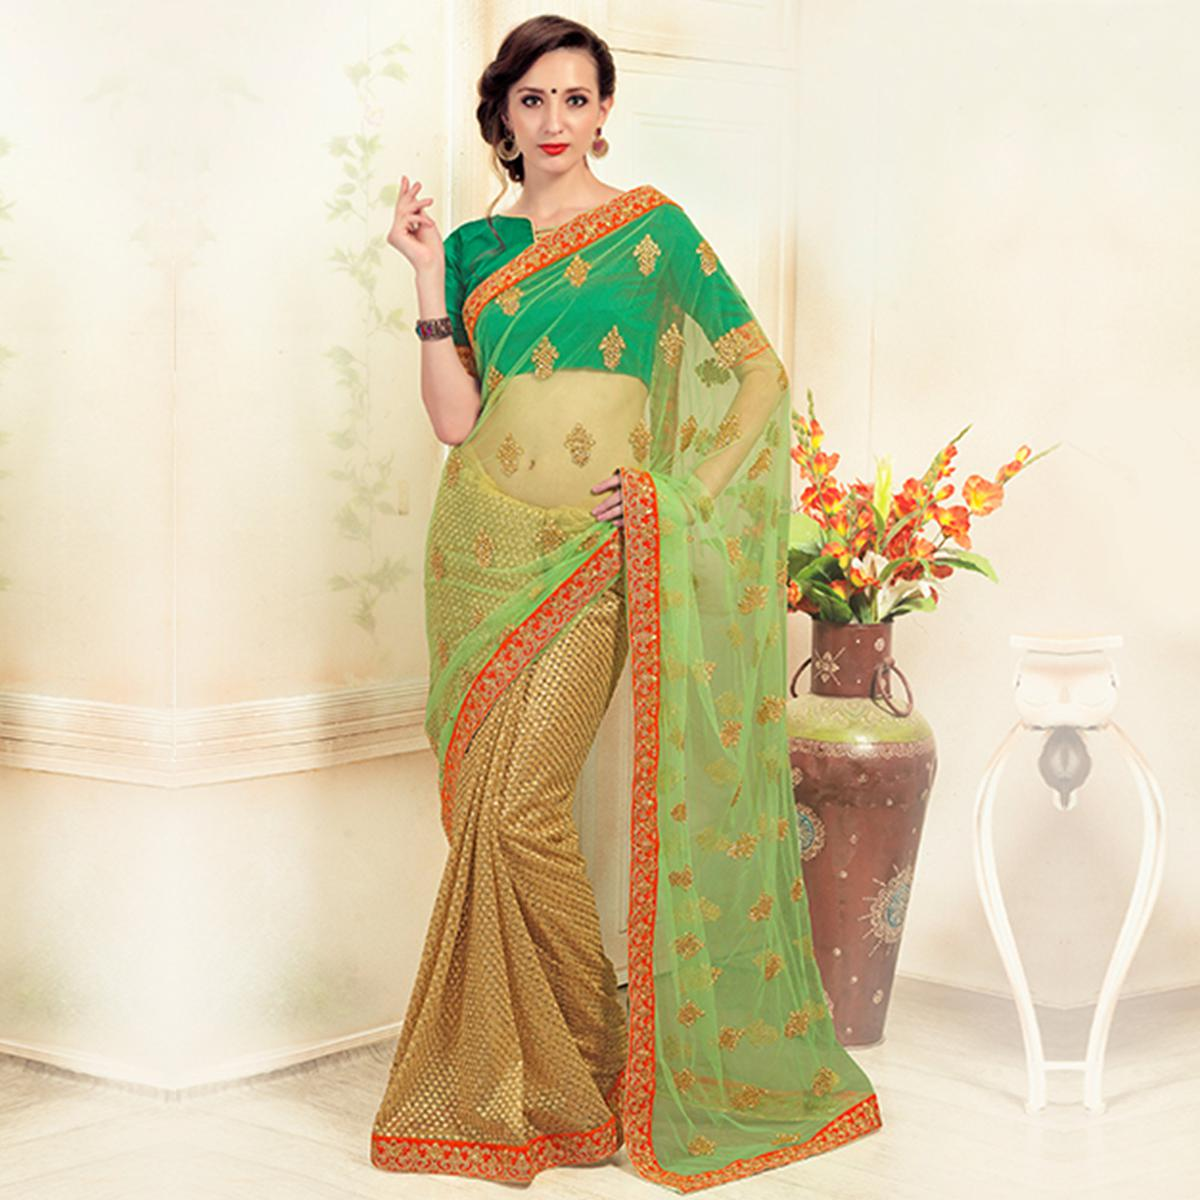 Opulent Golden-Green Colored Party Wear Embroidered Net Saree